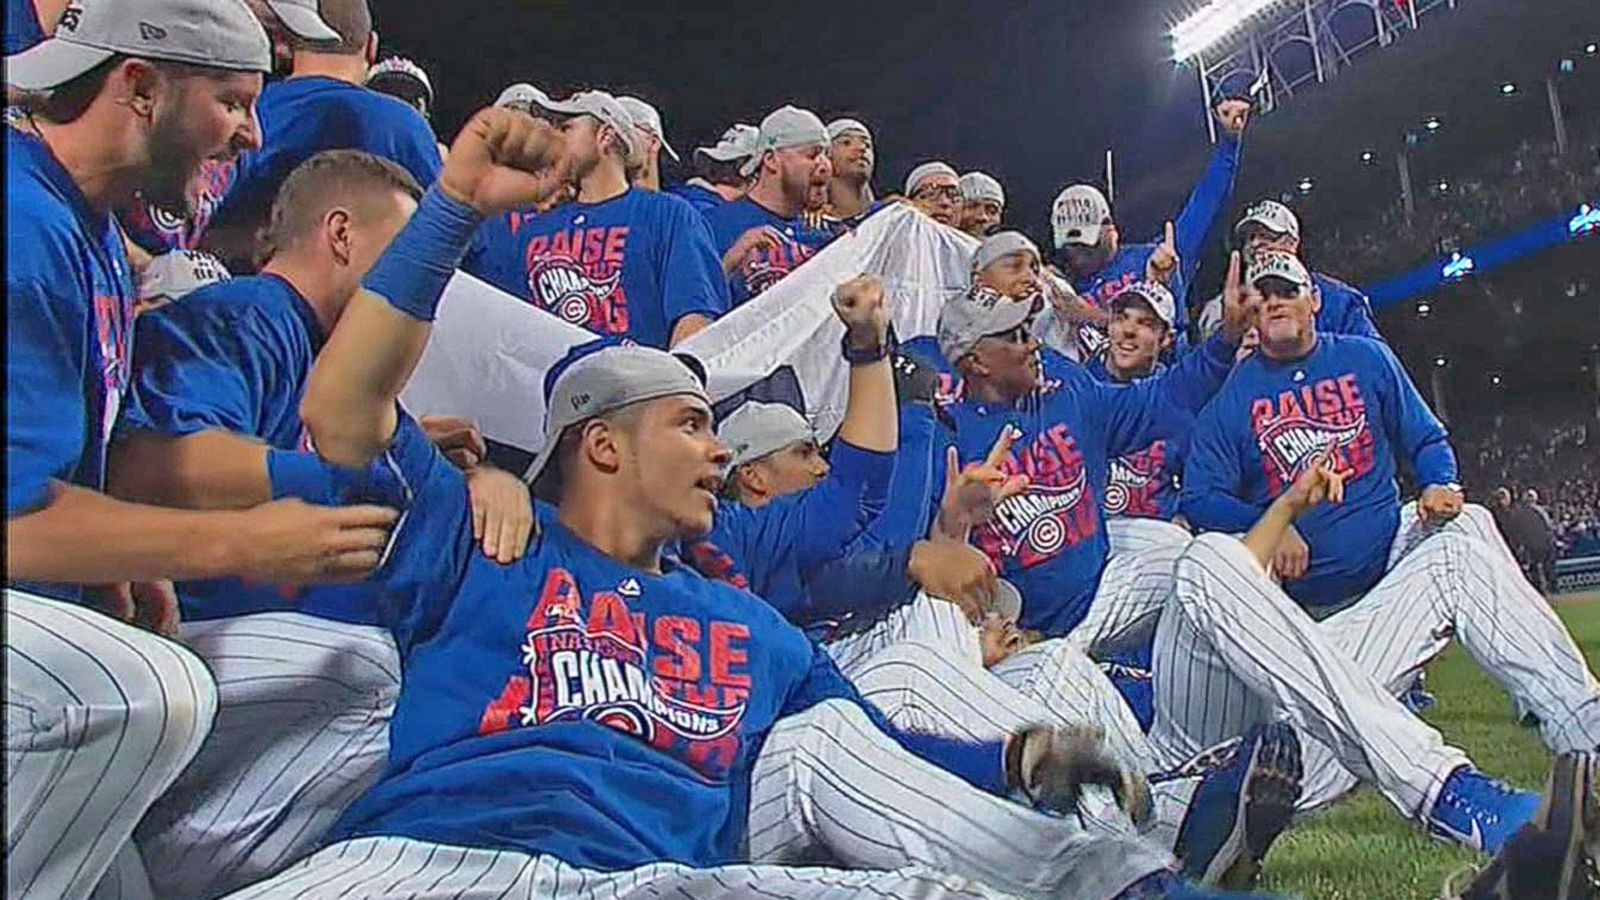 VIDEO: Chicago Cubs Win 1st Pennant Since 1945, Advance to World Series